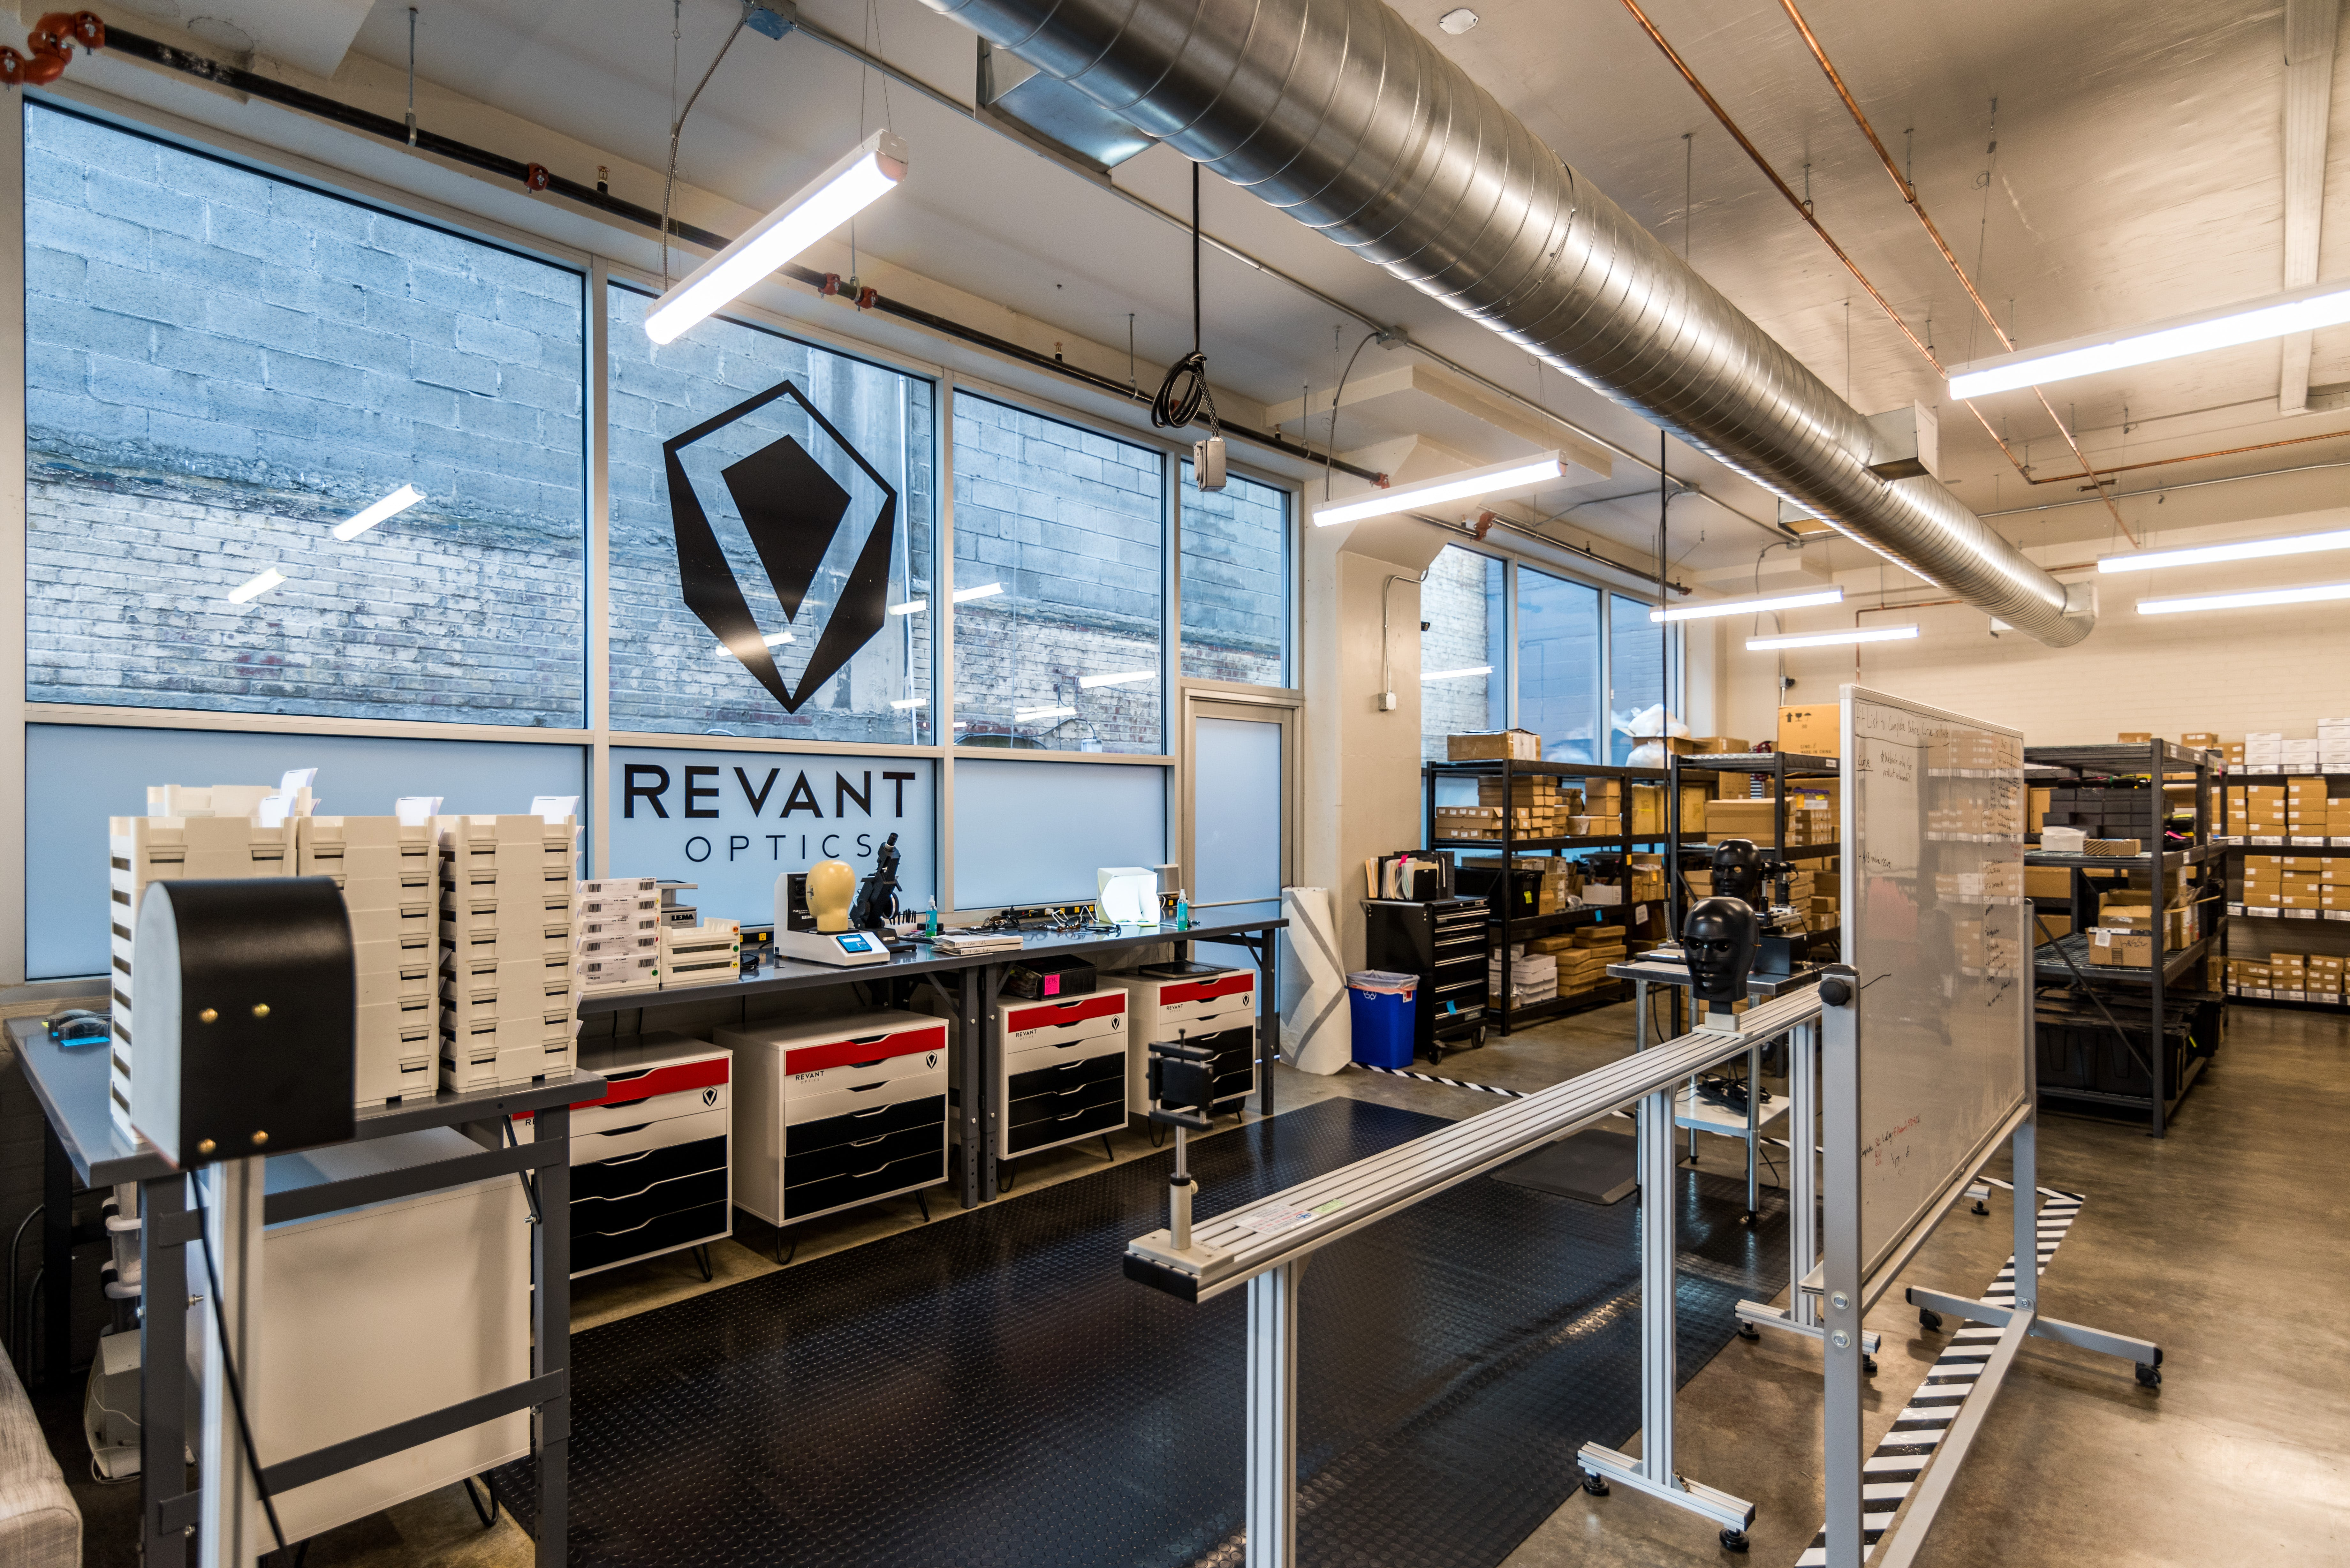 Revant workshop